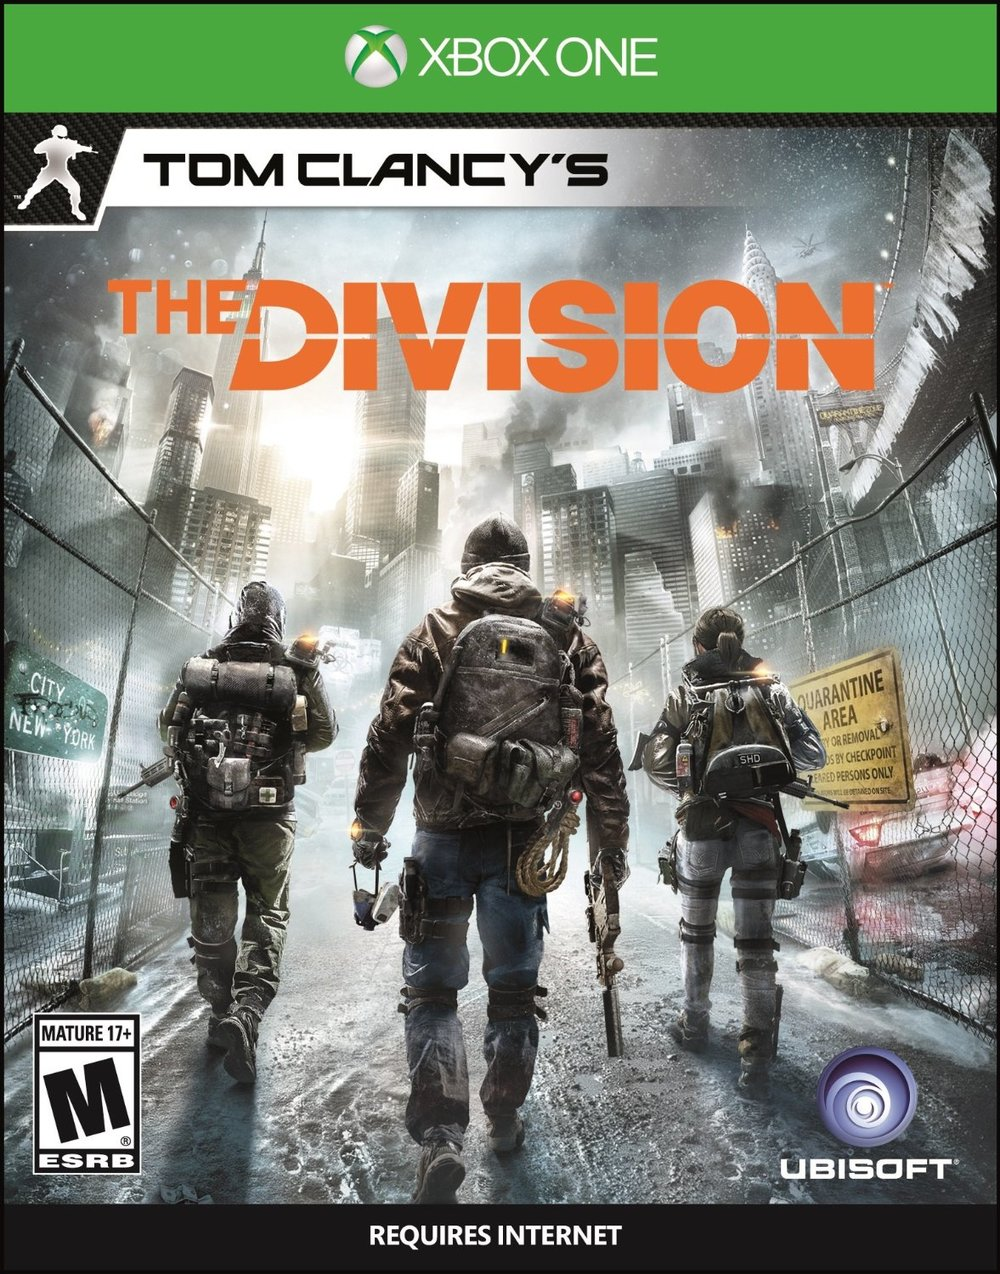 The Division Xbox One Review